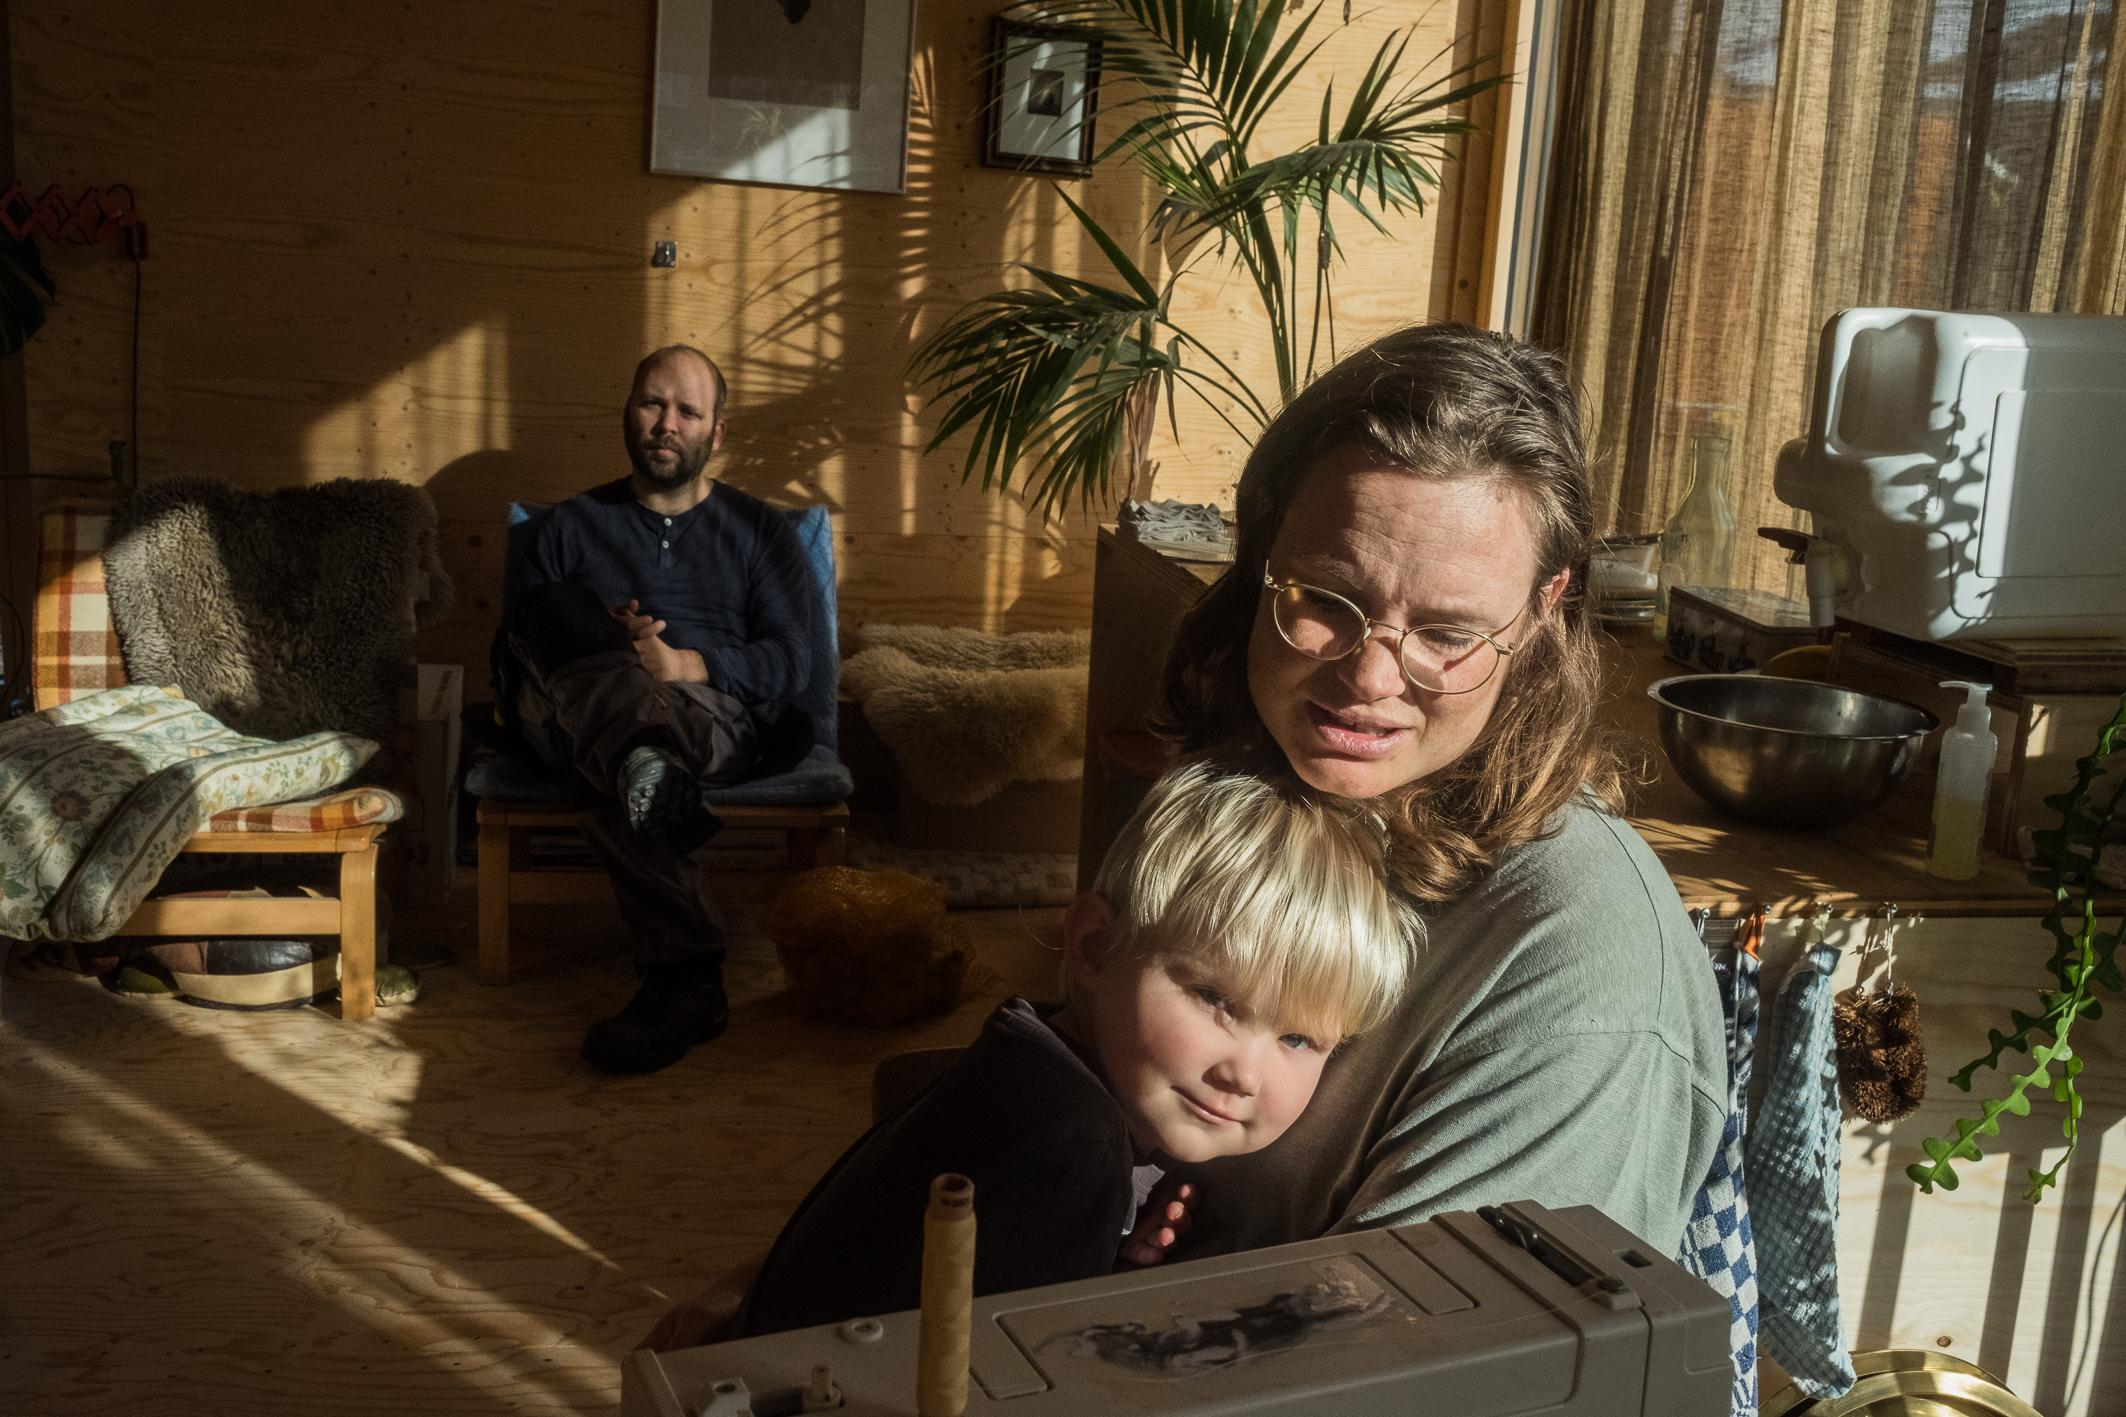 """Jurre Antonisse and Jasmijn Twilt live with their son in a Tiny House in Delft. Their choise for this life-style is driven by ecological reasons. """"Sometimes goals and means are swapped. People go for the cute and nice designs instead of focusing on less emissions and a sustainable future."""""""